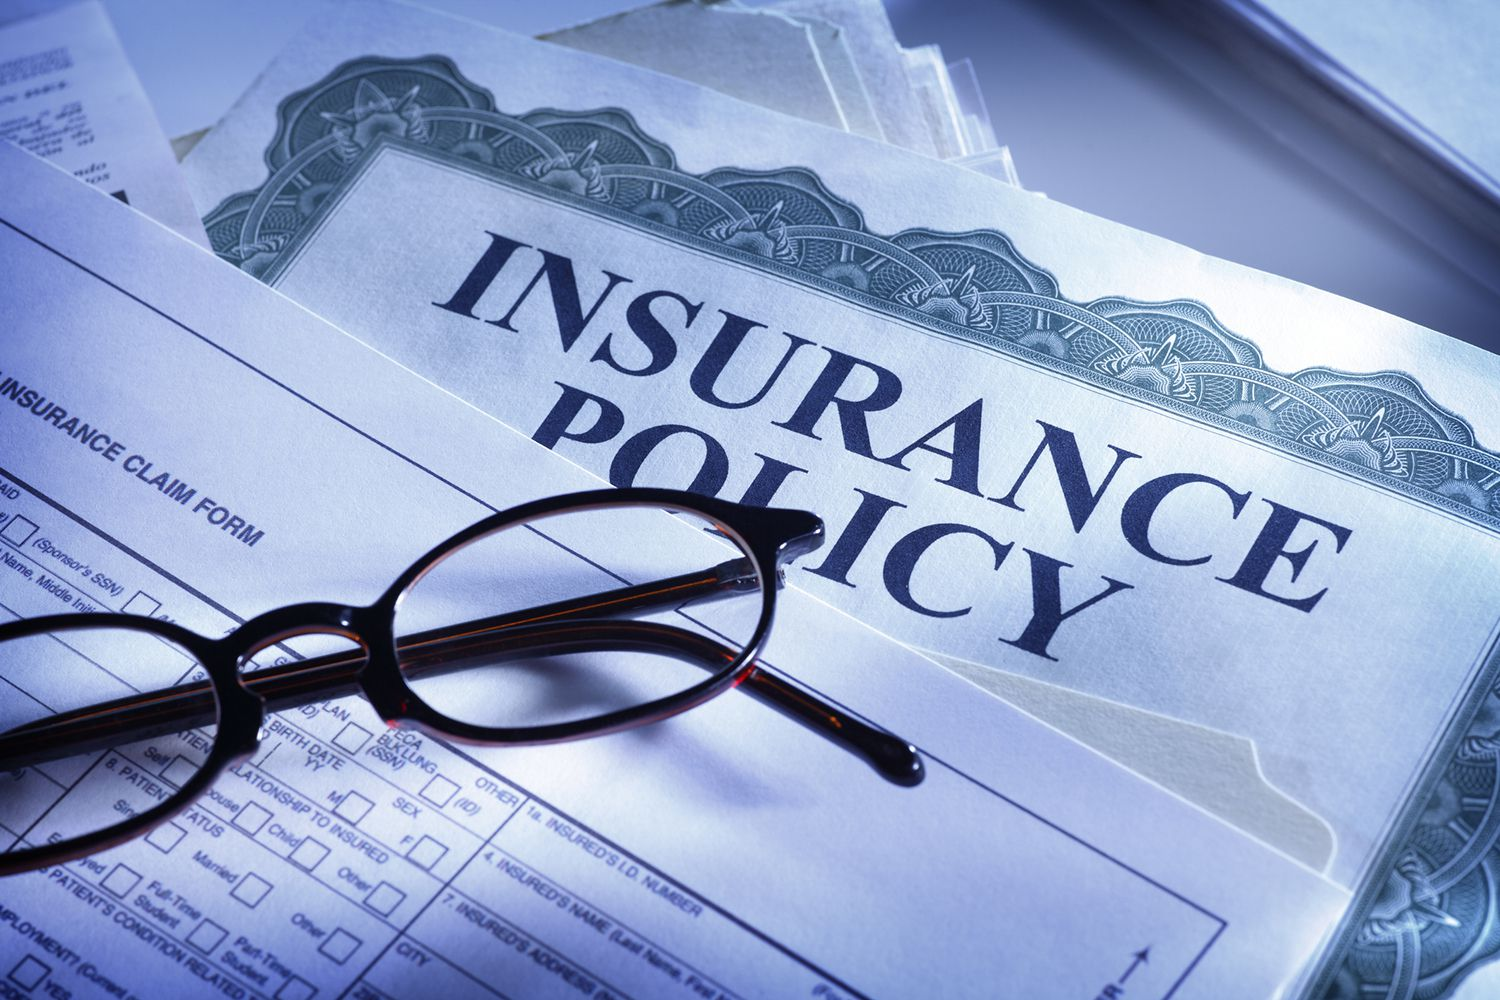 Nailing down the right insurance can be tough. Here are some useful leads on where and how to get insurance benefits.